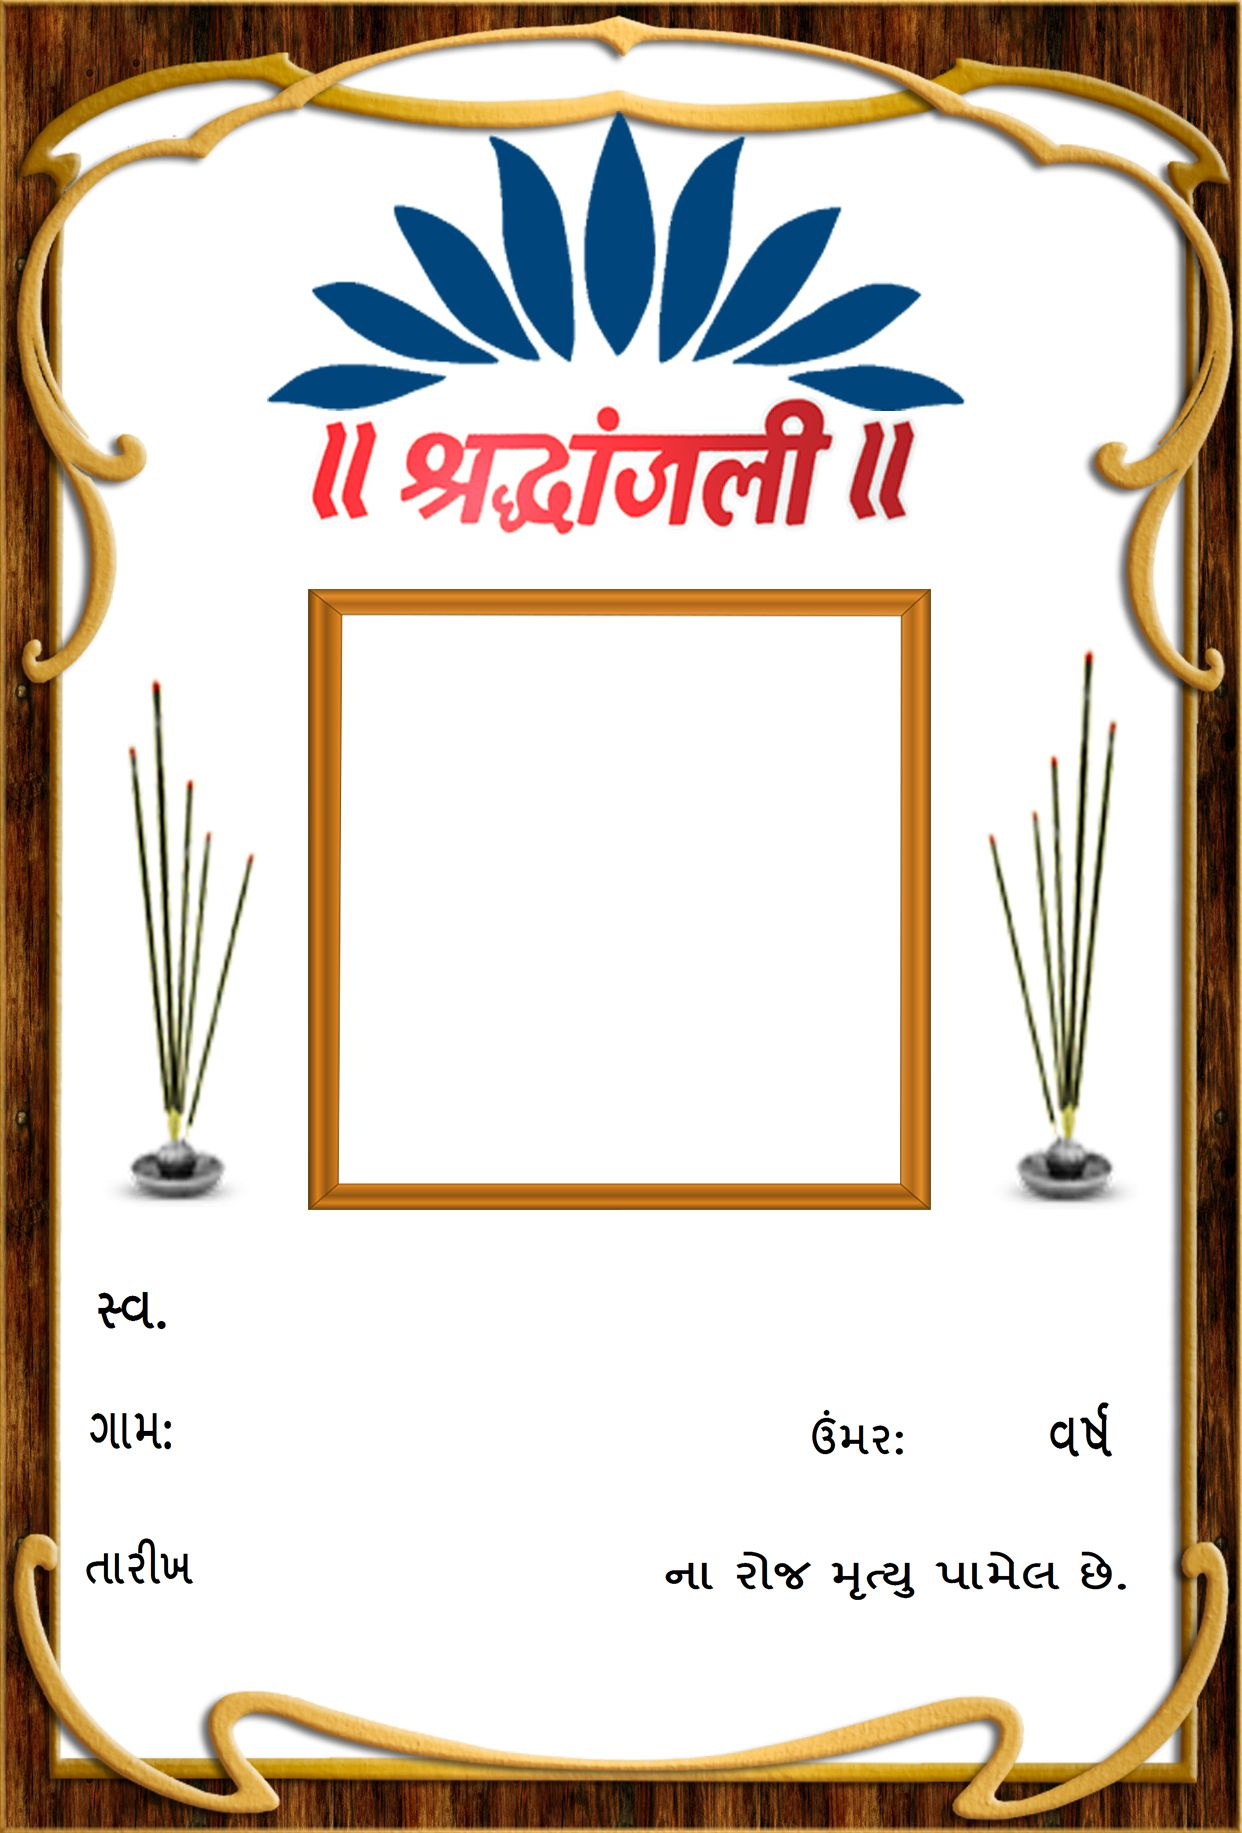 Shradhanjali Photo Maker Free Besnu Photo Maker Shradhanjali Photo Frame Free Photo Frames Photo Maker Birthday Photo Frame